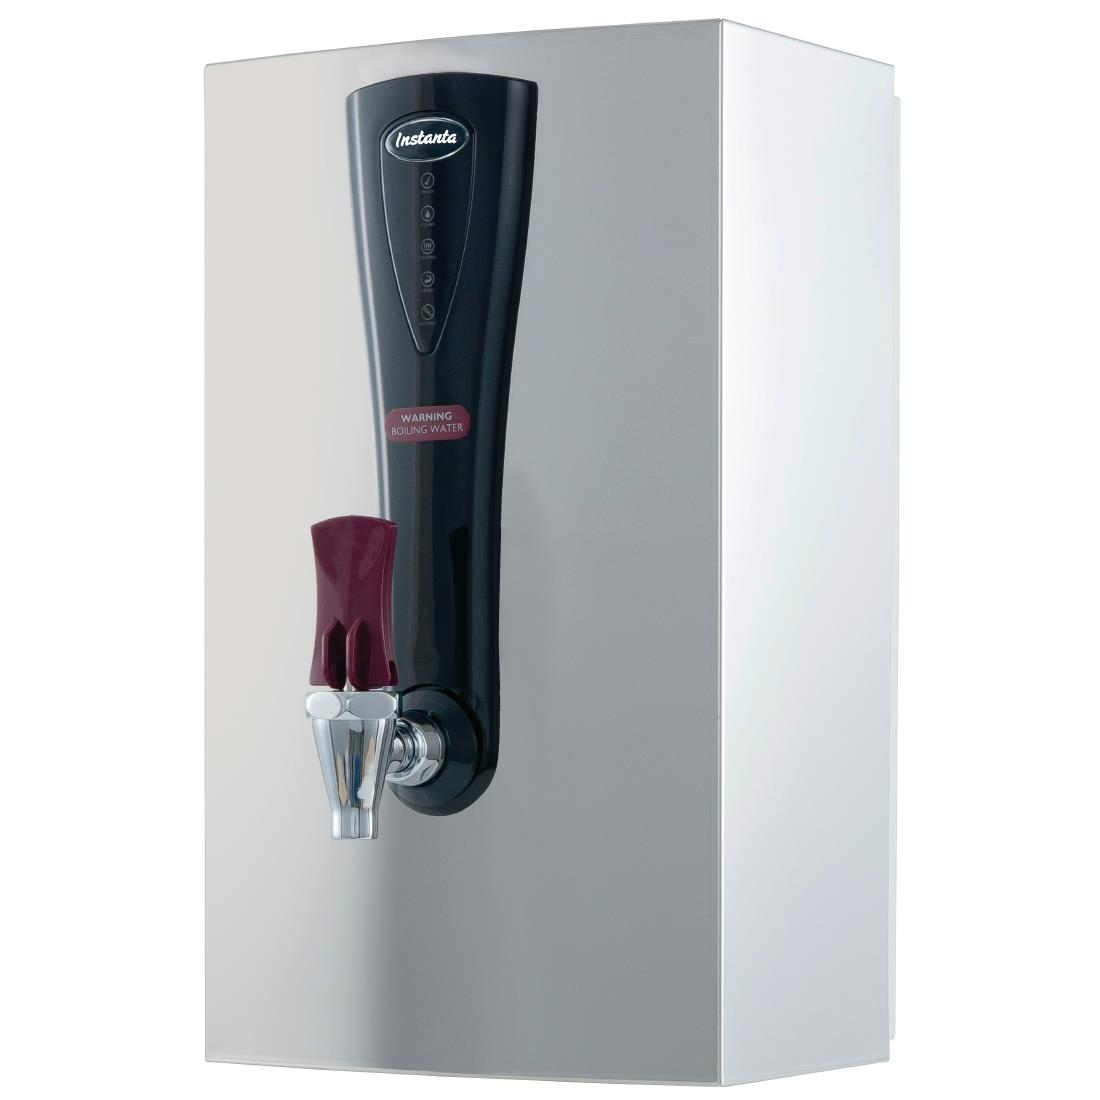 Image of Instanta Autofill Wall Mounted Water Boiler 5Ltr WA5N